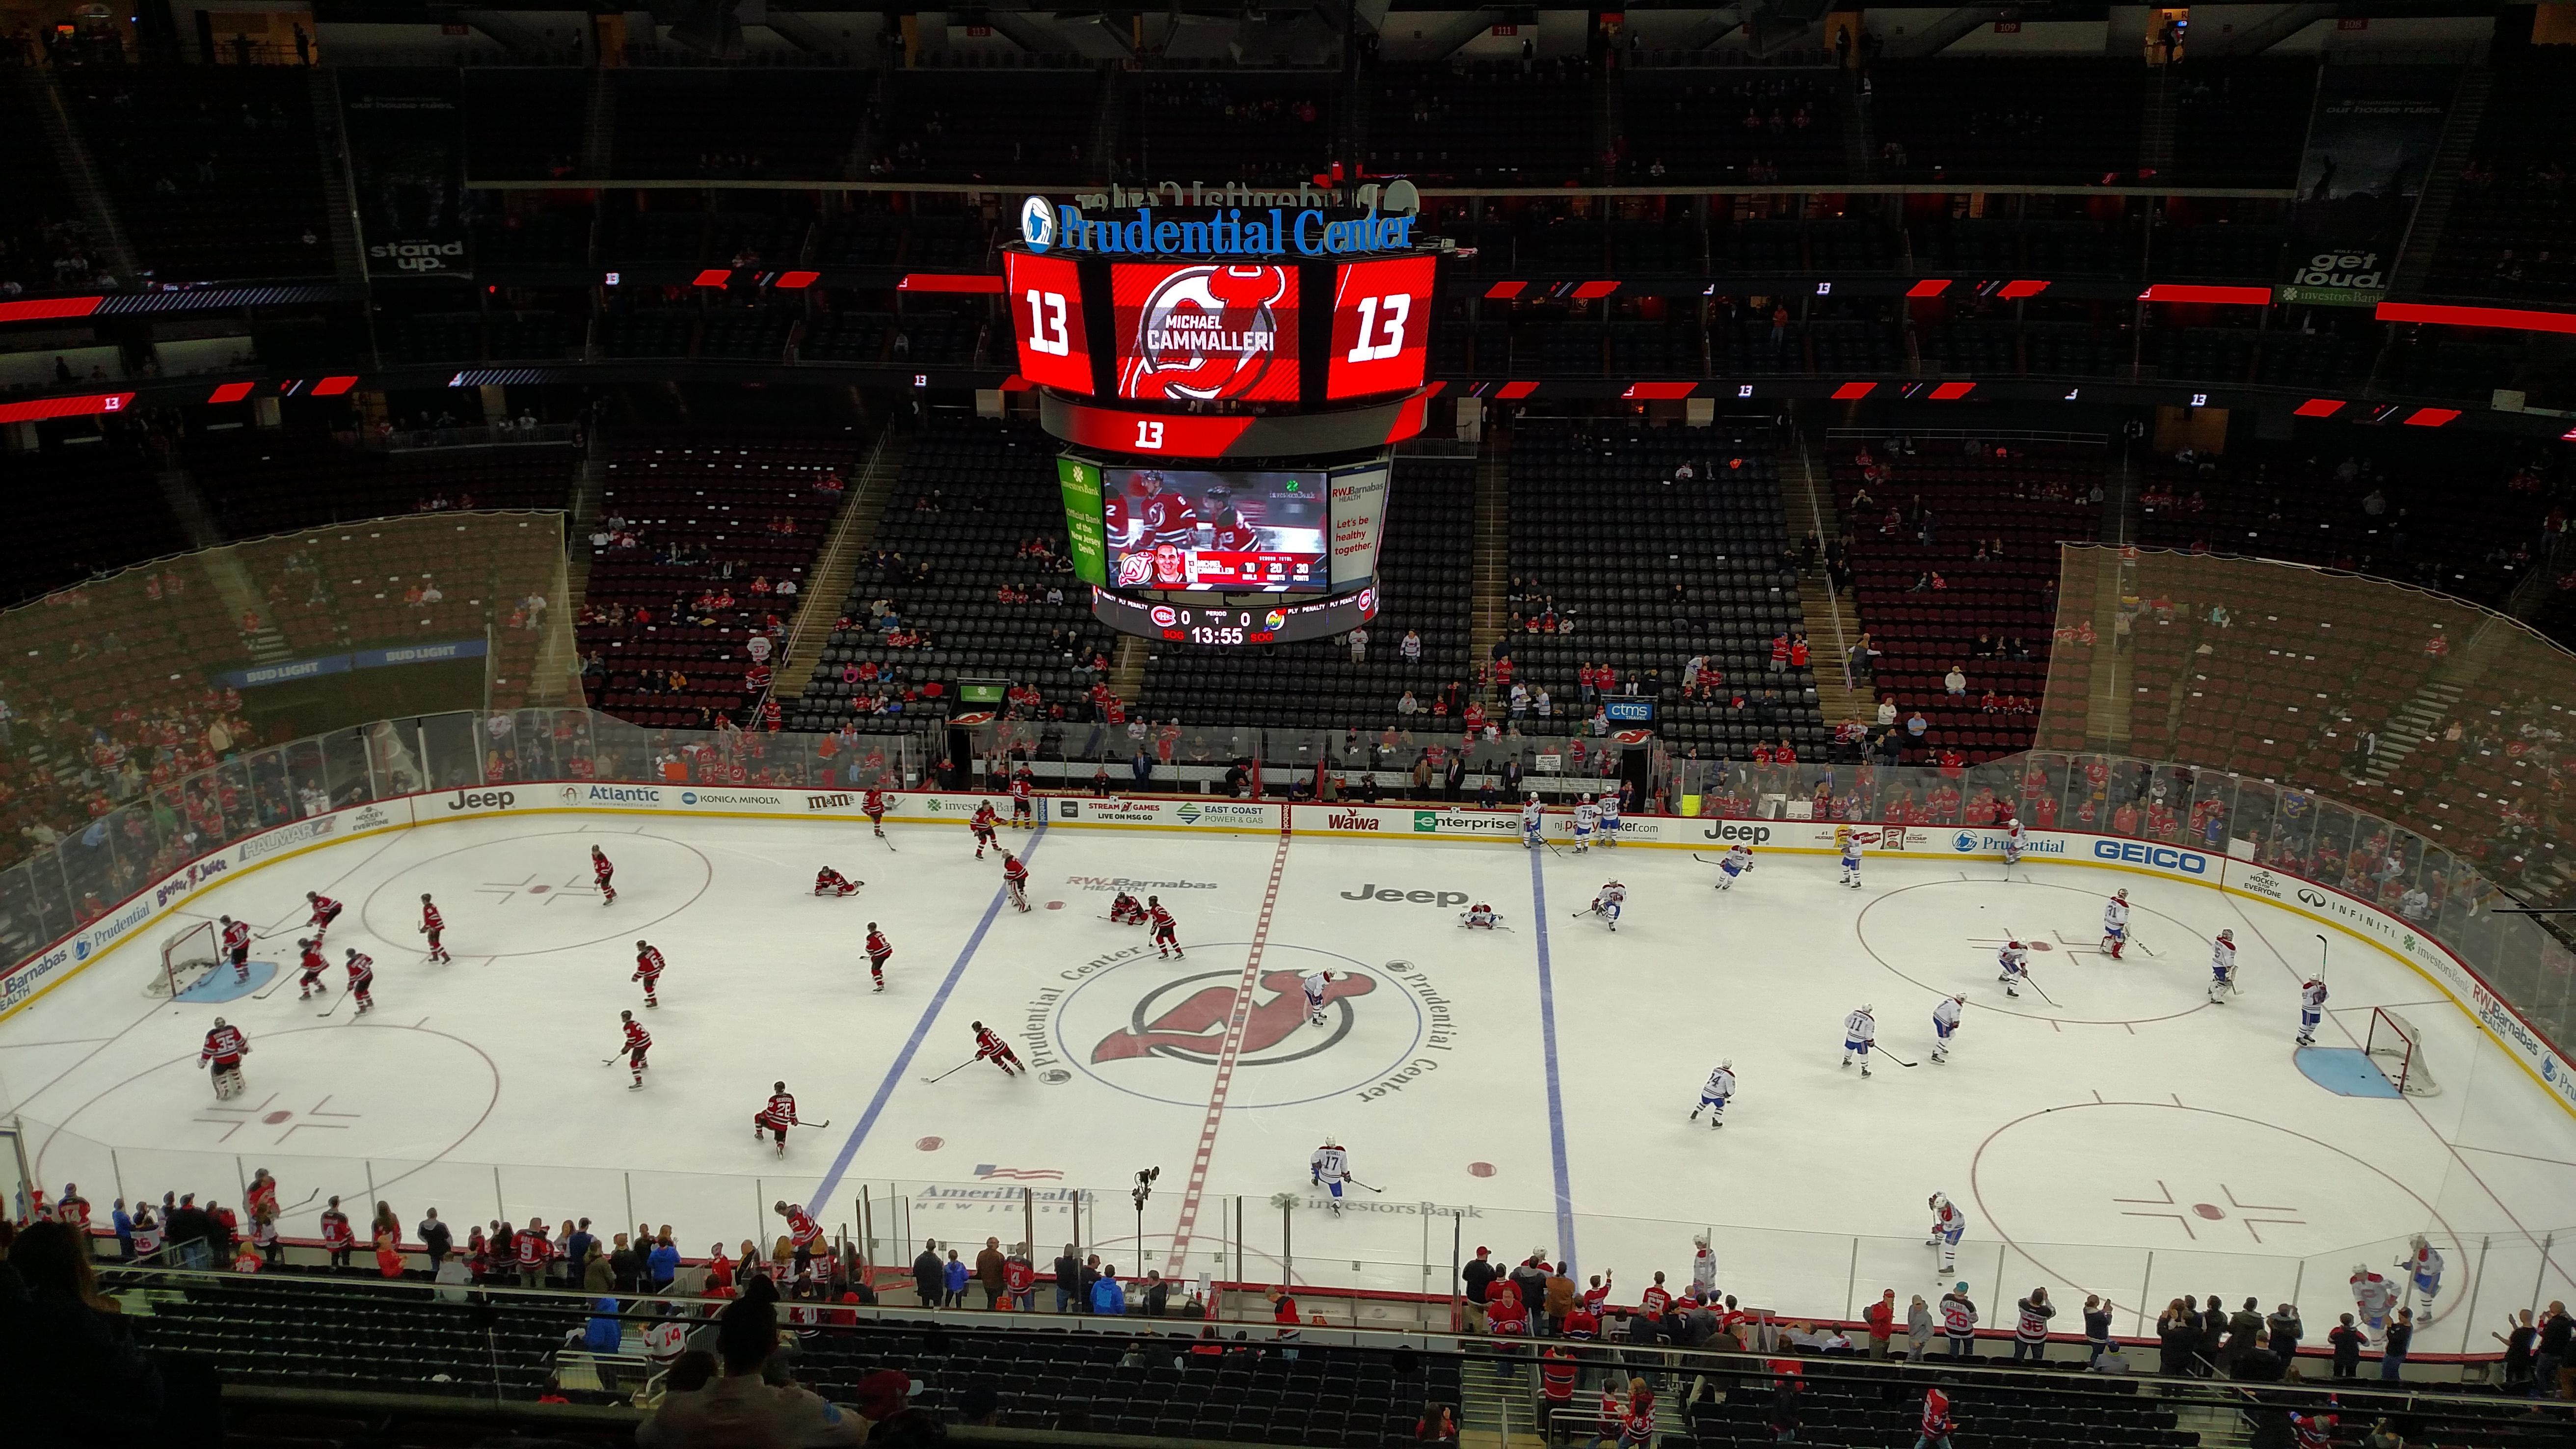 Prudential Center Section 129 Row 7 Seat 8